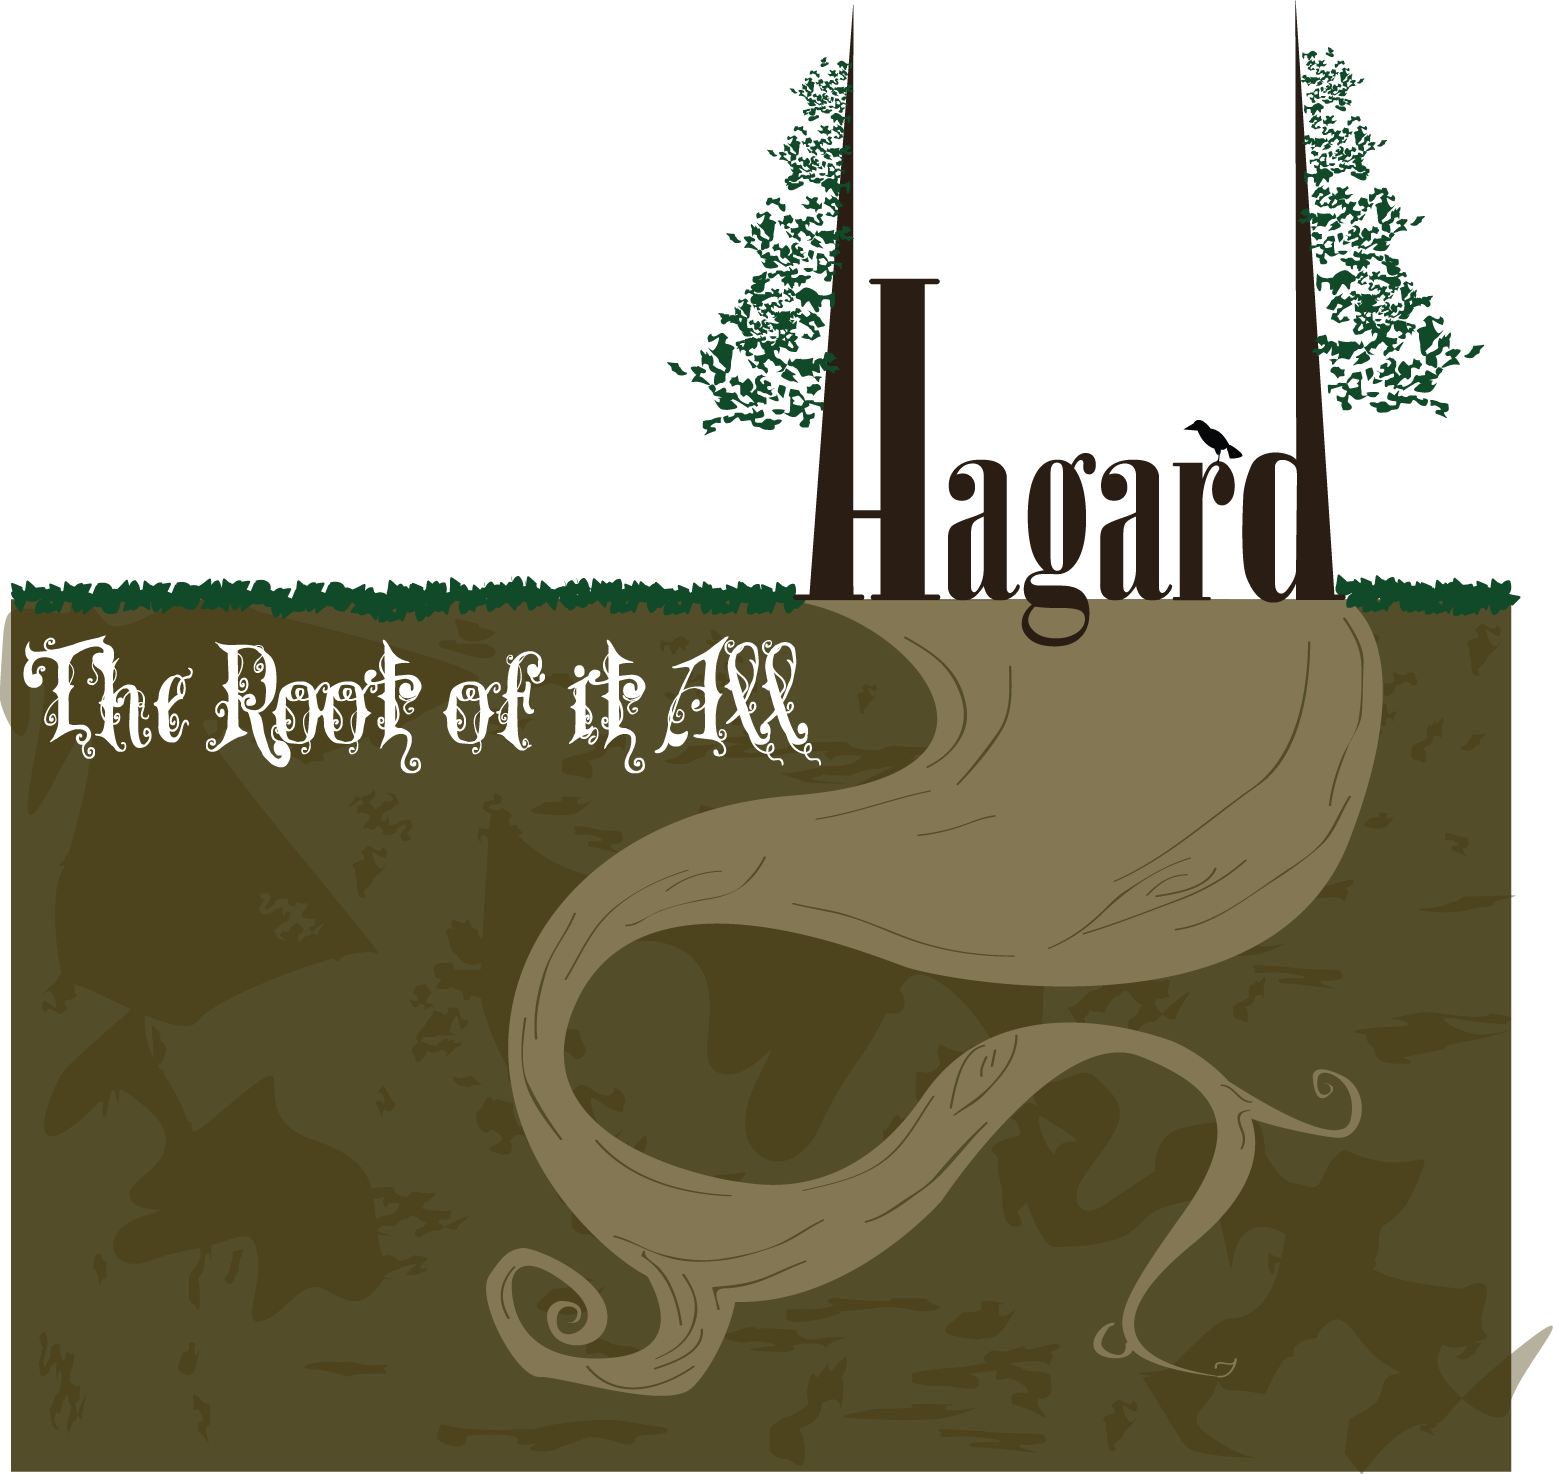 hagard cd cover